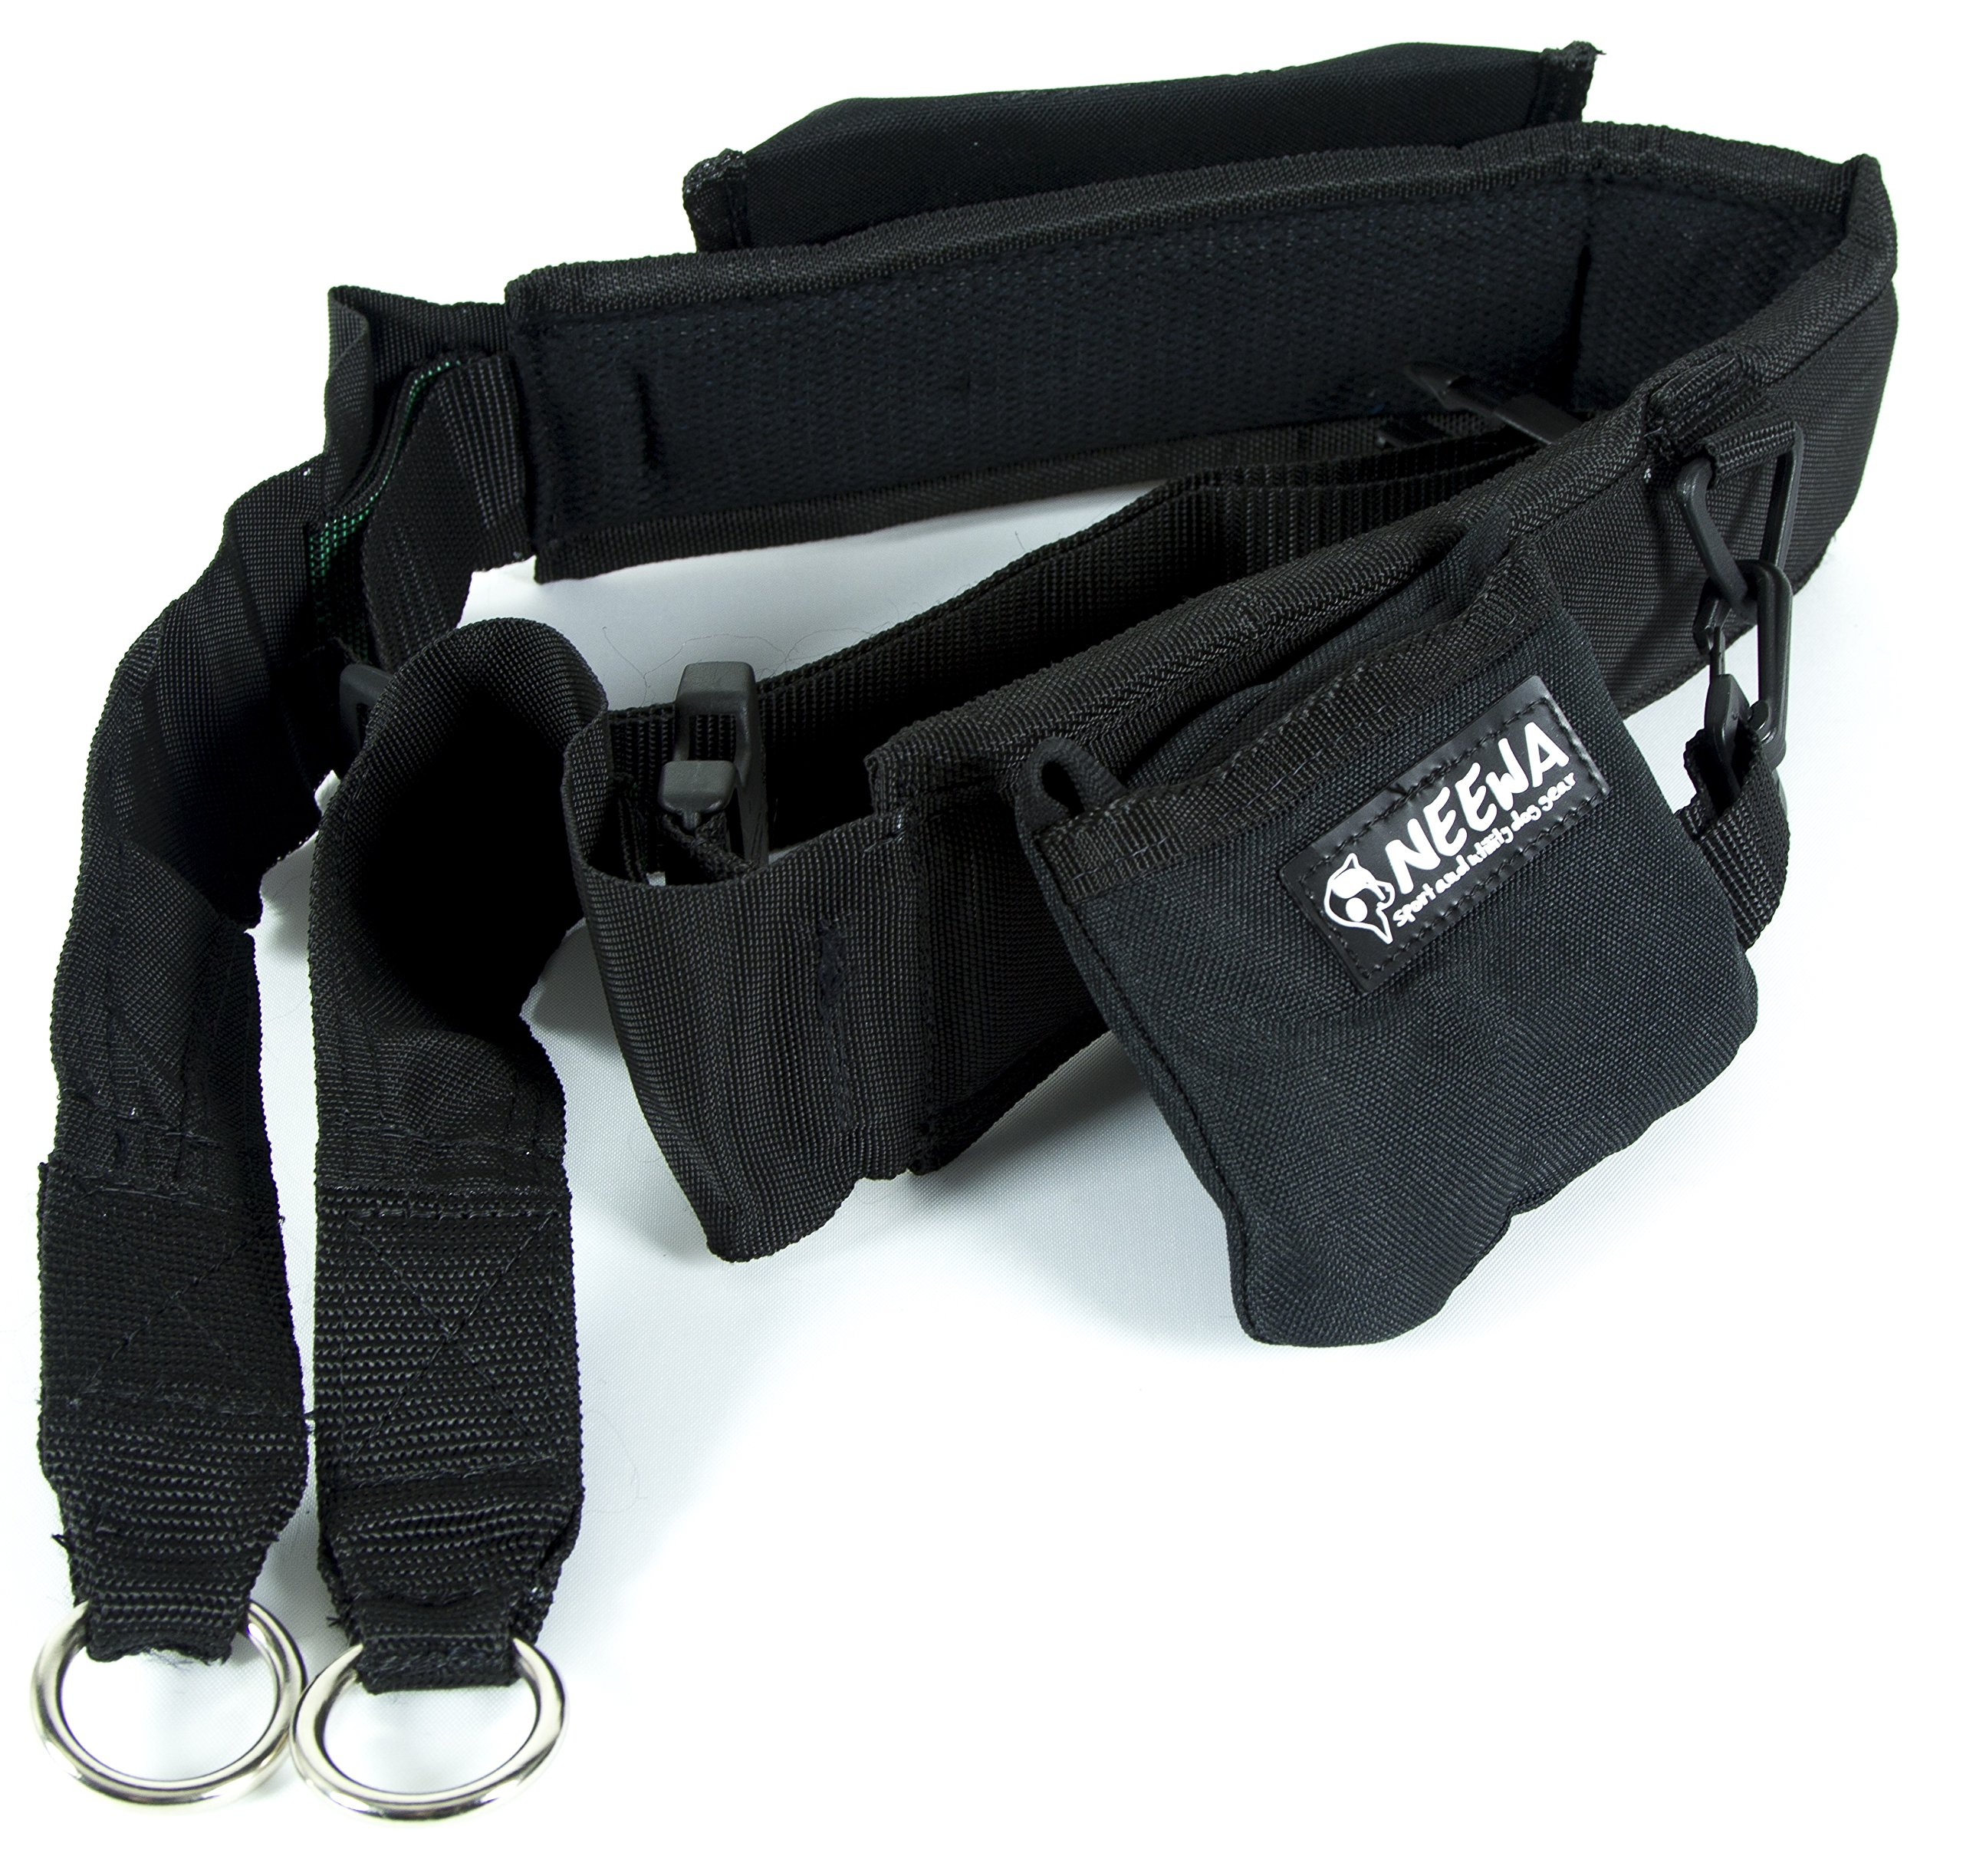 Neewa Dog Walking Belt with Pocket and Collapsing Bowl, Ideal for Trekking, Hiking and Hands Free Dog Leashes